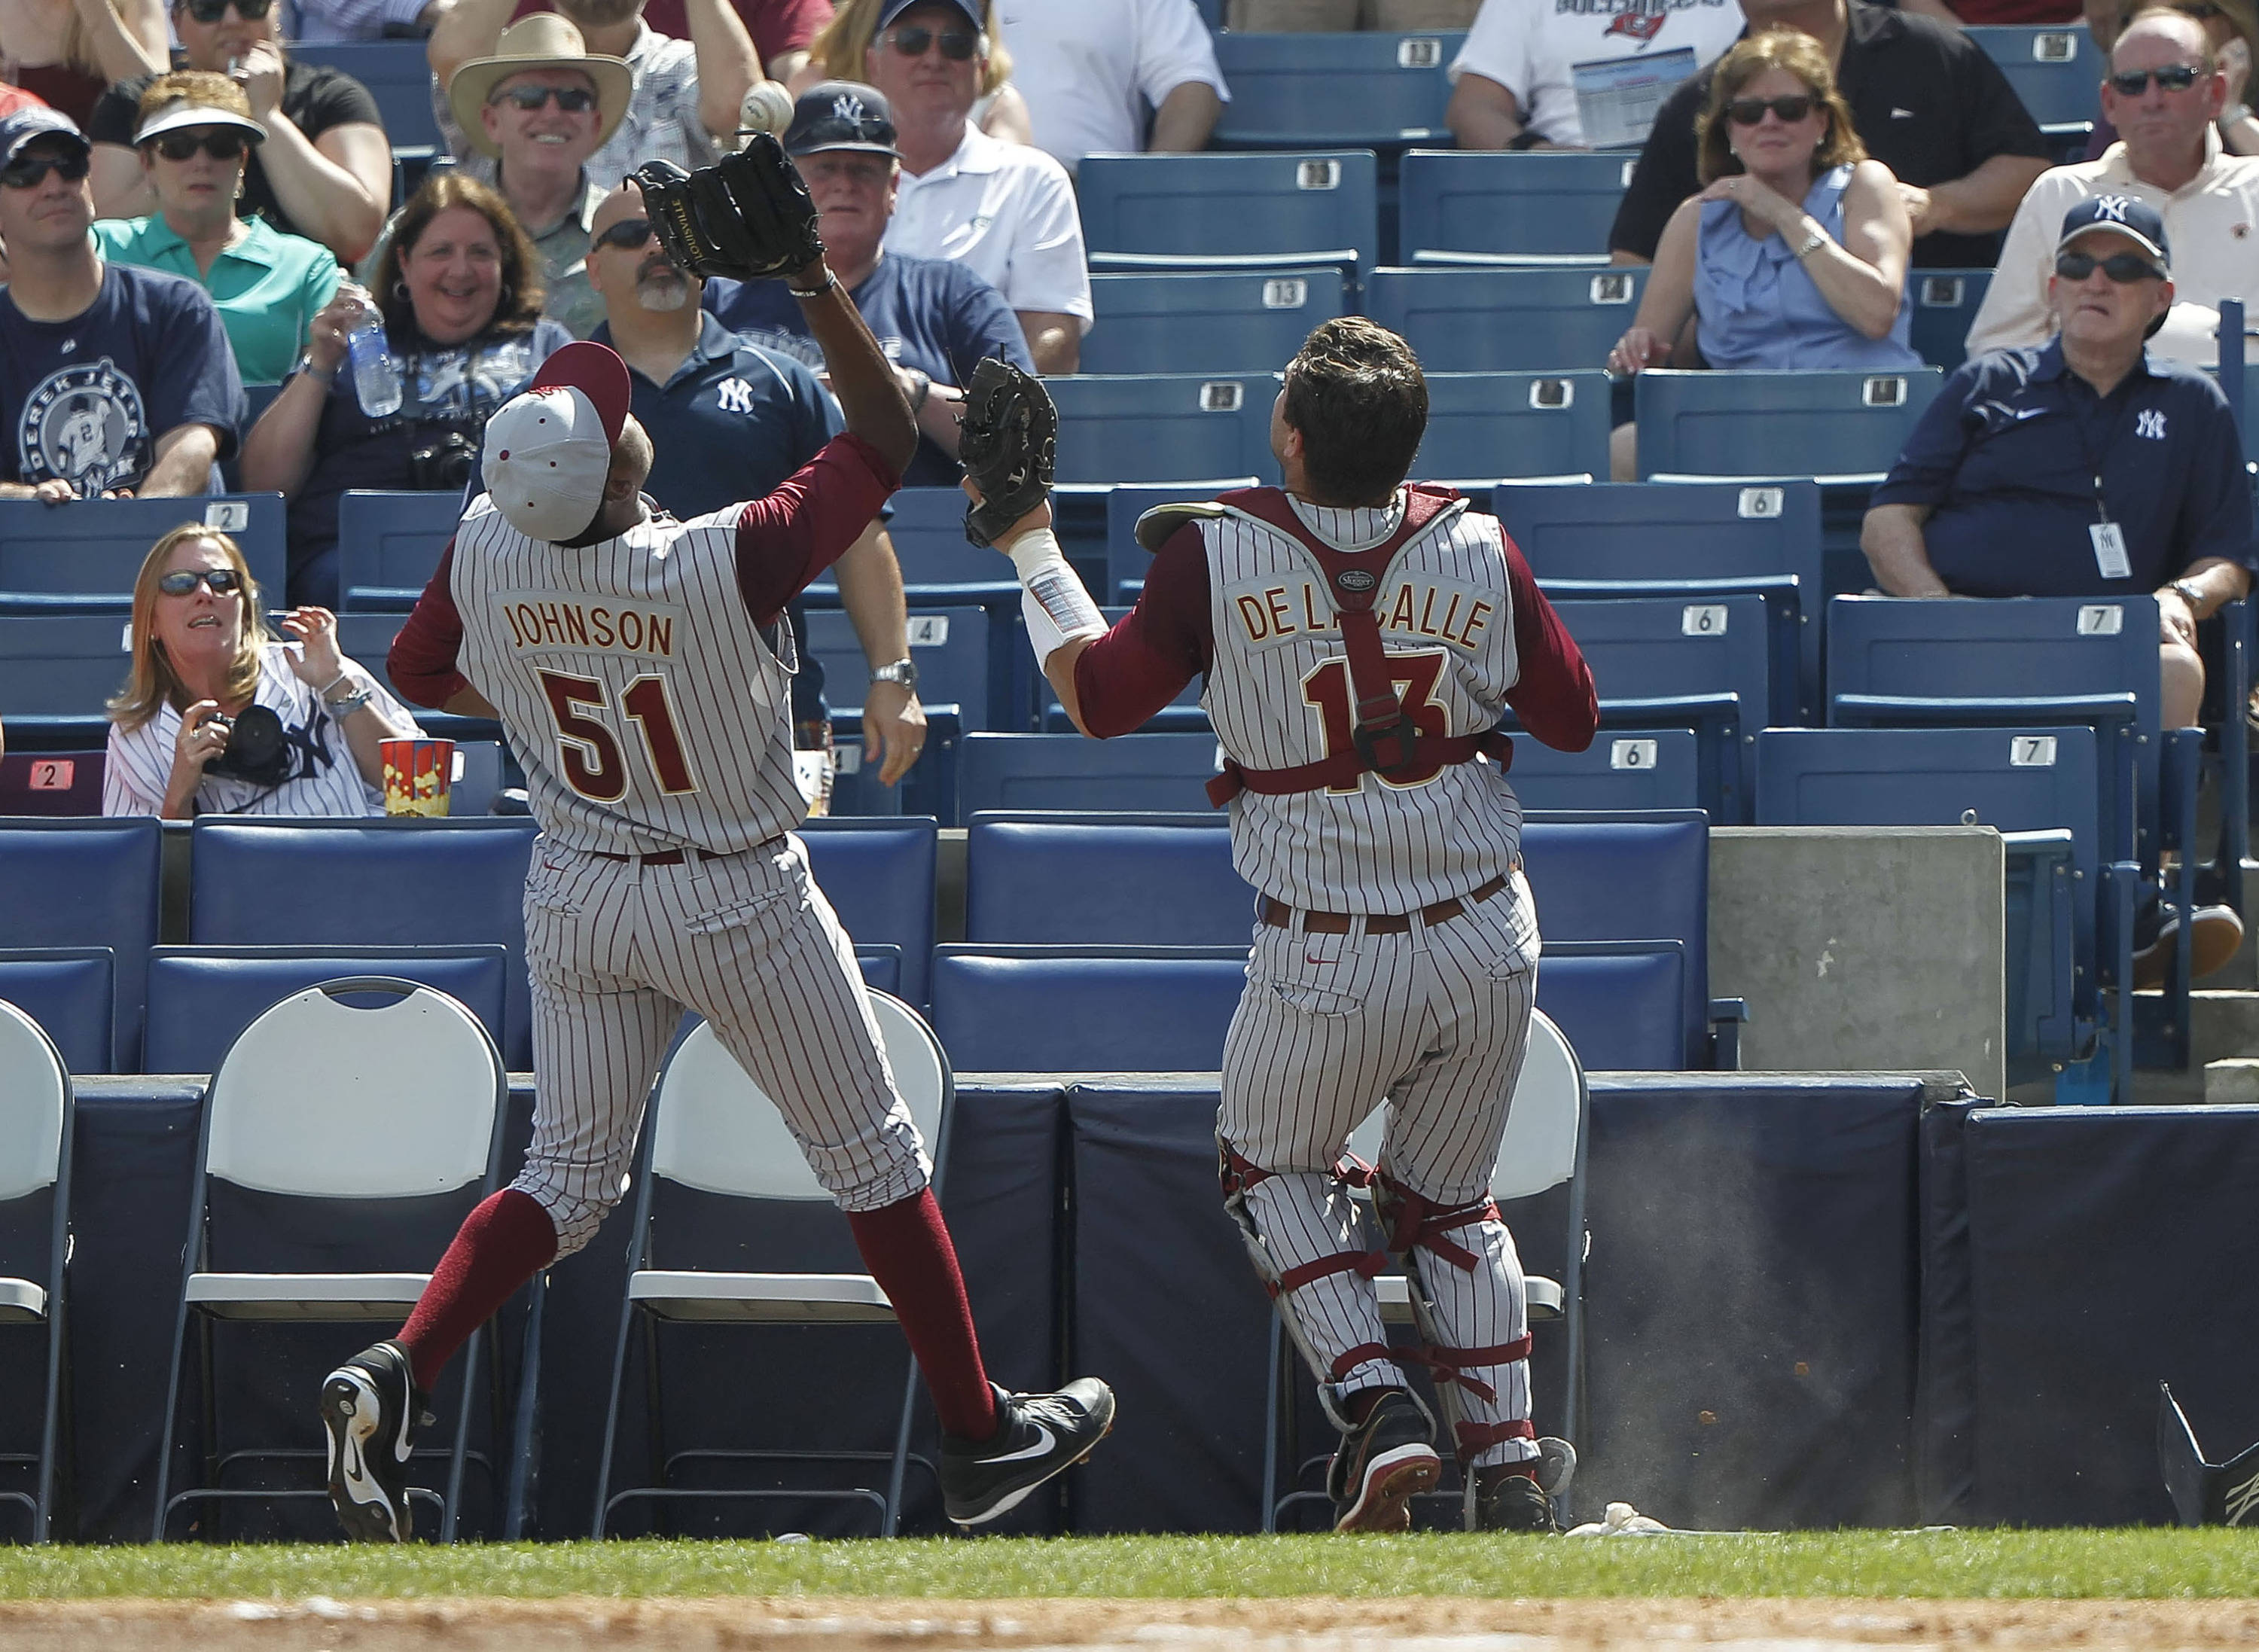 Feb 25, 2014; Tampa, FL, USA;  Florida State Seminoles pitcher Brandon Johnson (51) catches a foul ball for an out as catcher Danny De La Calle looks on during the third inning against the New York Yankees at George M. Steinbrenner Field. Mandatory Credit: Kim Klement-USA TODAY Sports